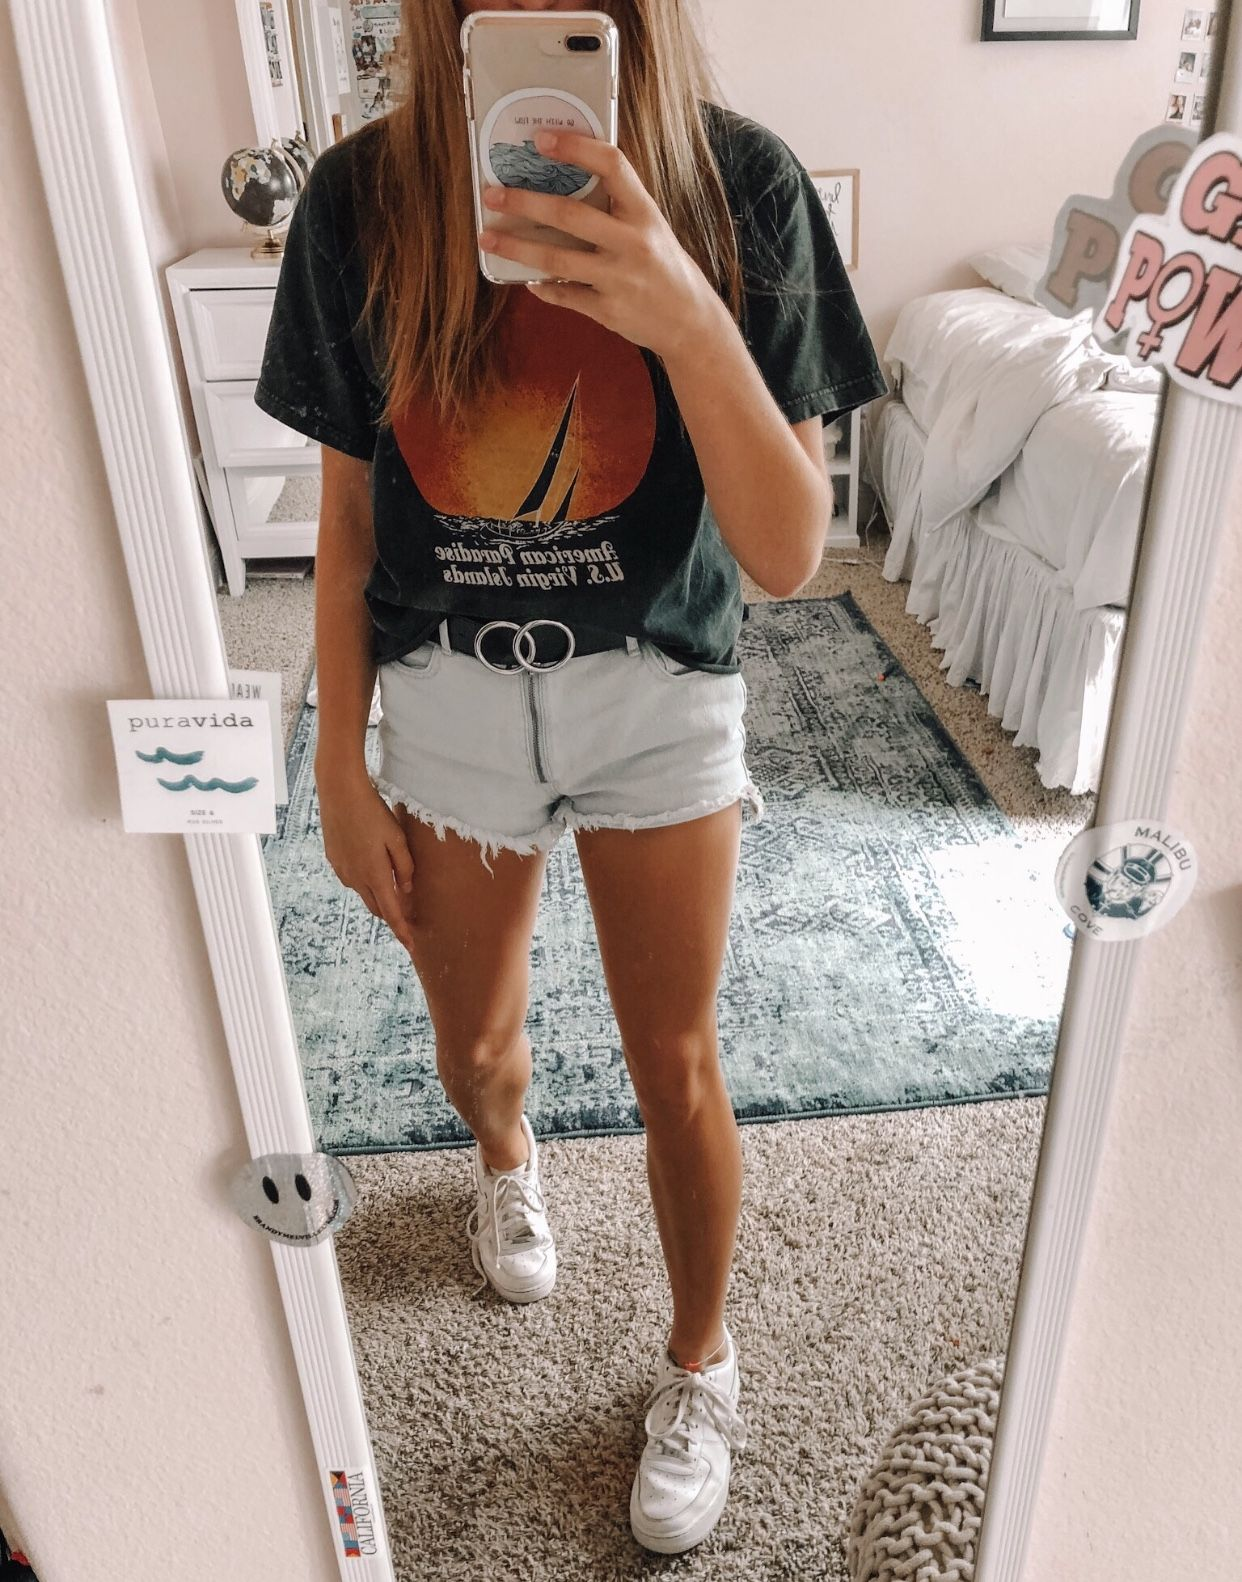 Pin by hailey ✰ on vsco favs in 2019   Short outfits, Shorts, White